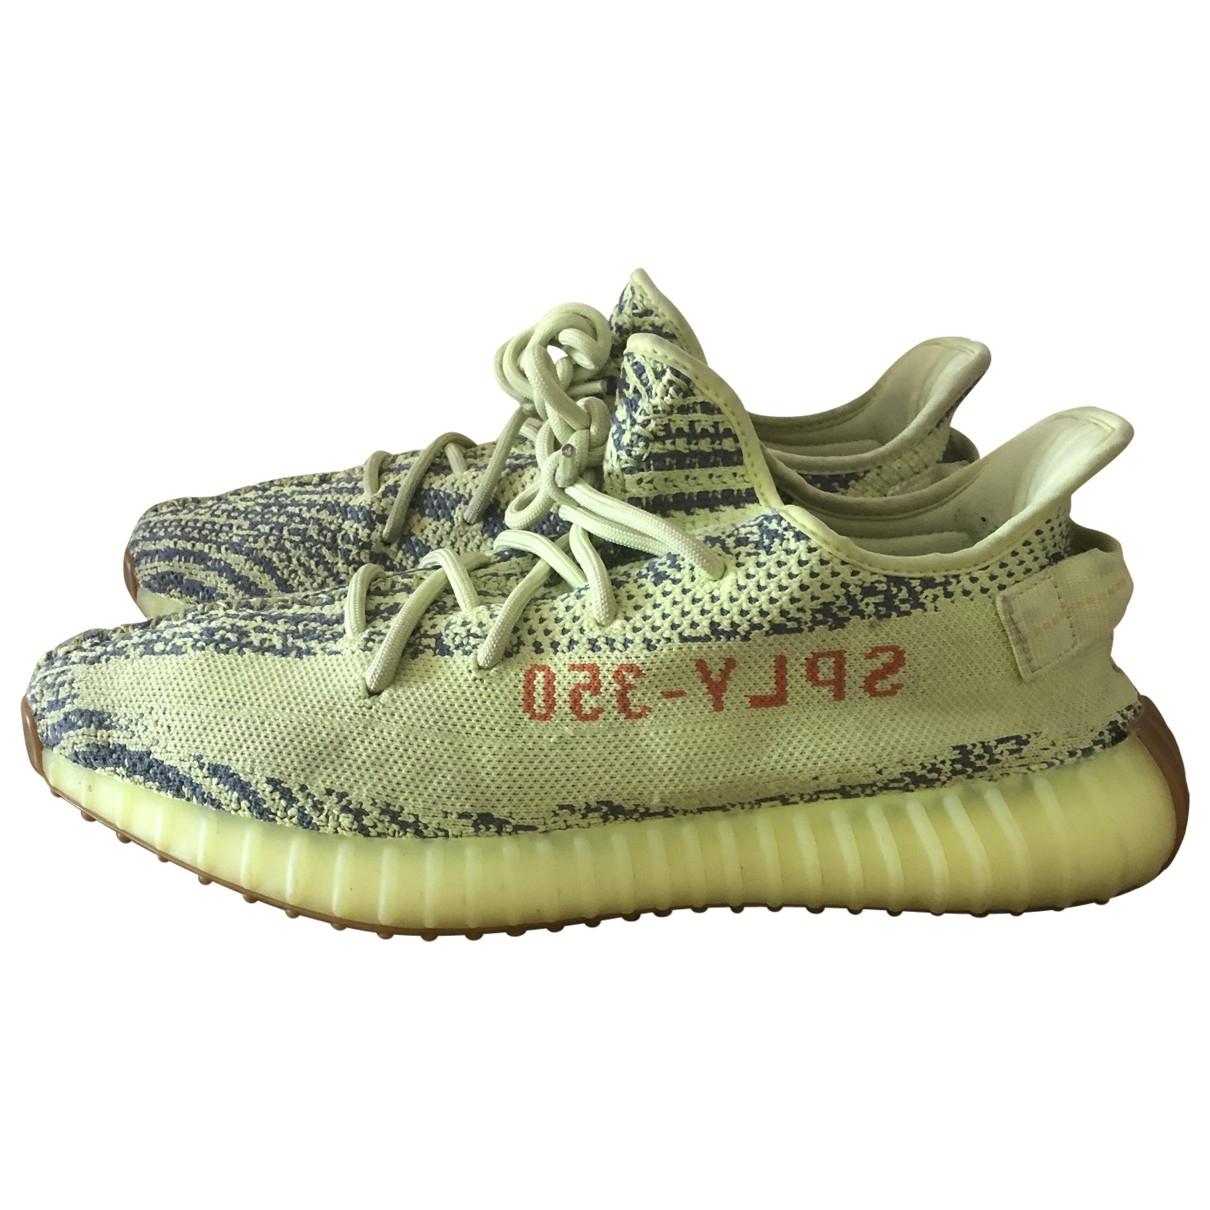 Yeezy X Adidas - Baskets Boost 350 V2 pour homme - vert